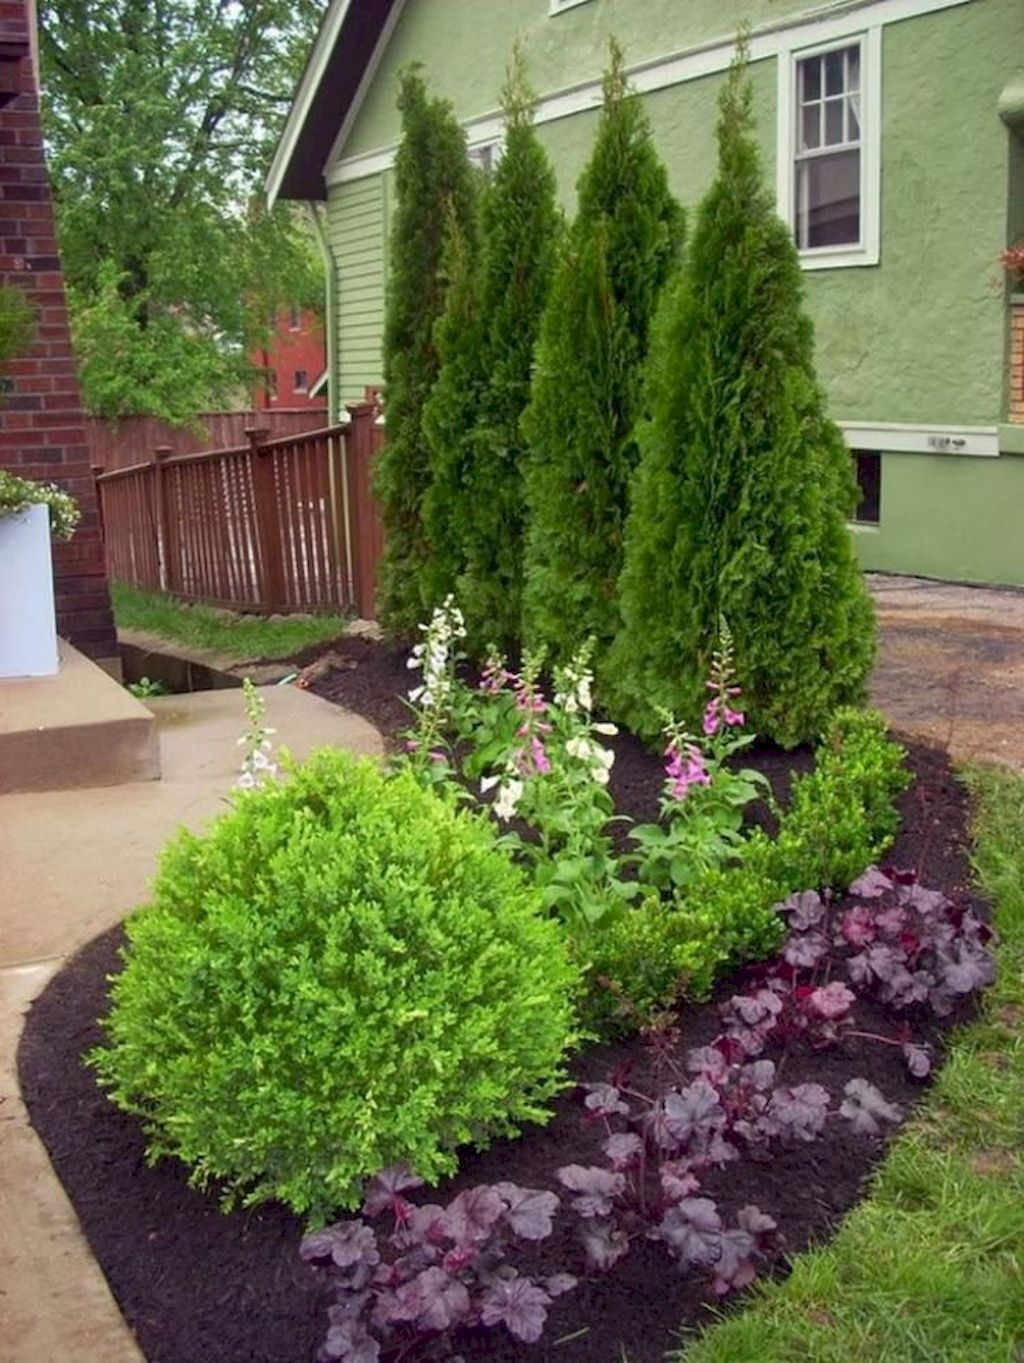 60 Gorgeous Side Yard Garden Design Ideas For Your Beautiful Home Side Inspiration -   14 garden design Large side yards ideas